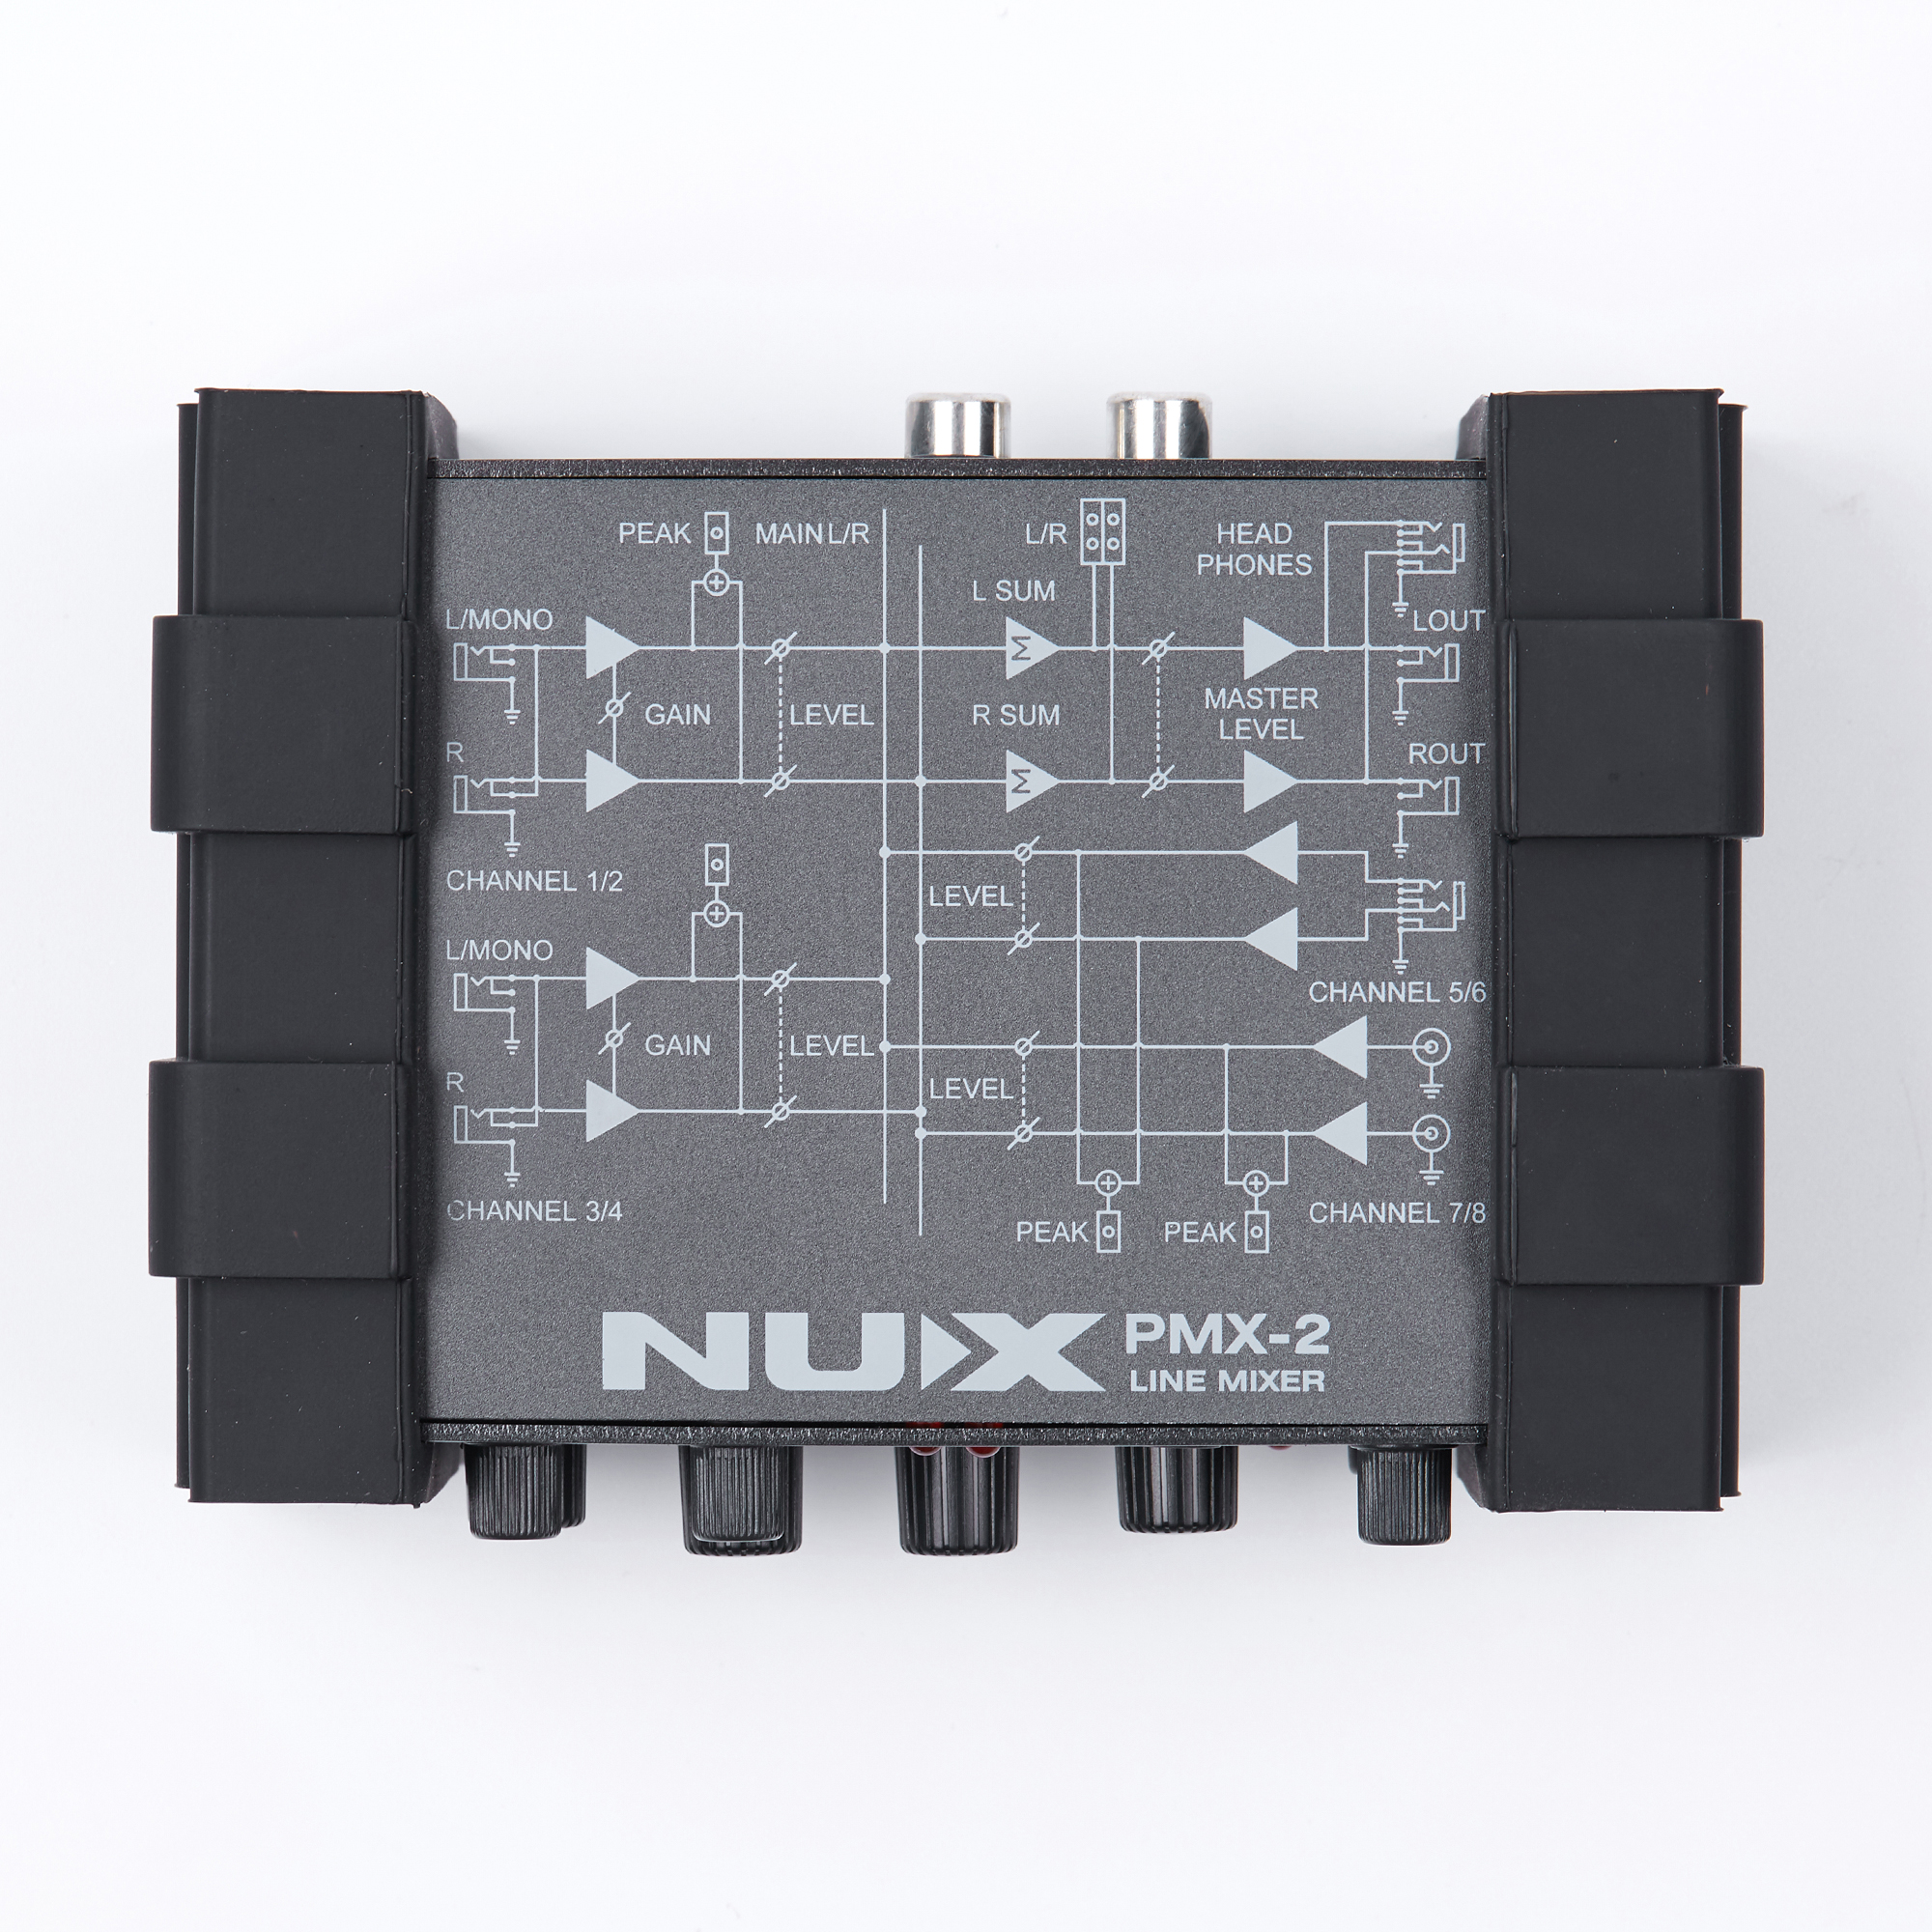 Gain Control 8 Inputs and 2 Outputs NUX PMX-2 Multi-Channel Mini Mixer 30 Musical Instruments Accessories for Guitar Bass Player бинокль bresser брессер compass 7x50 os